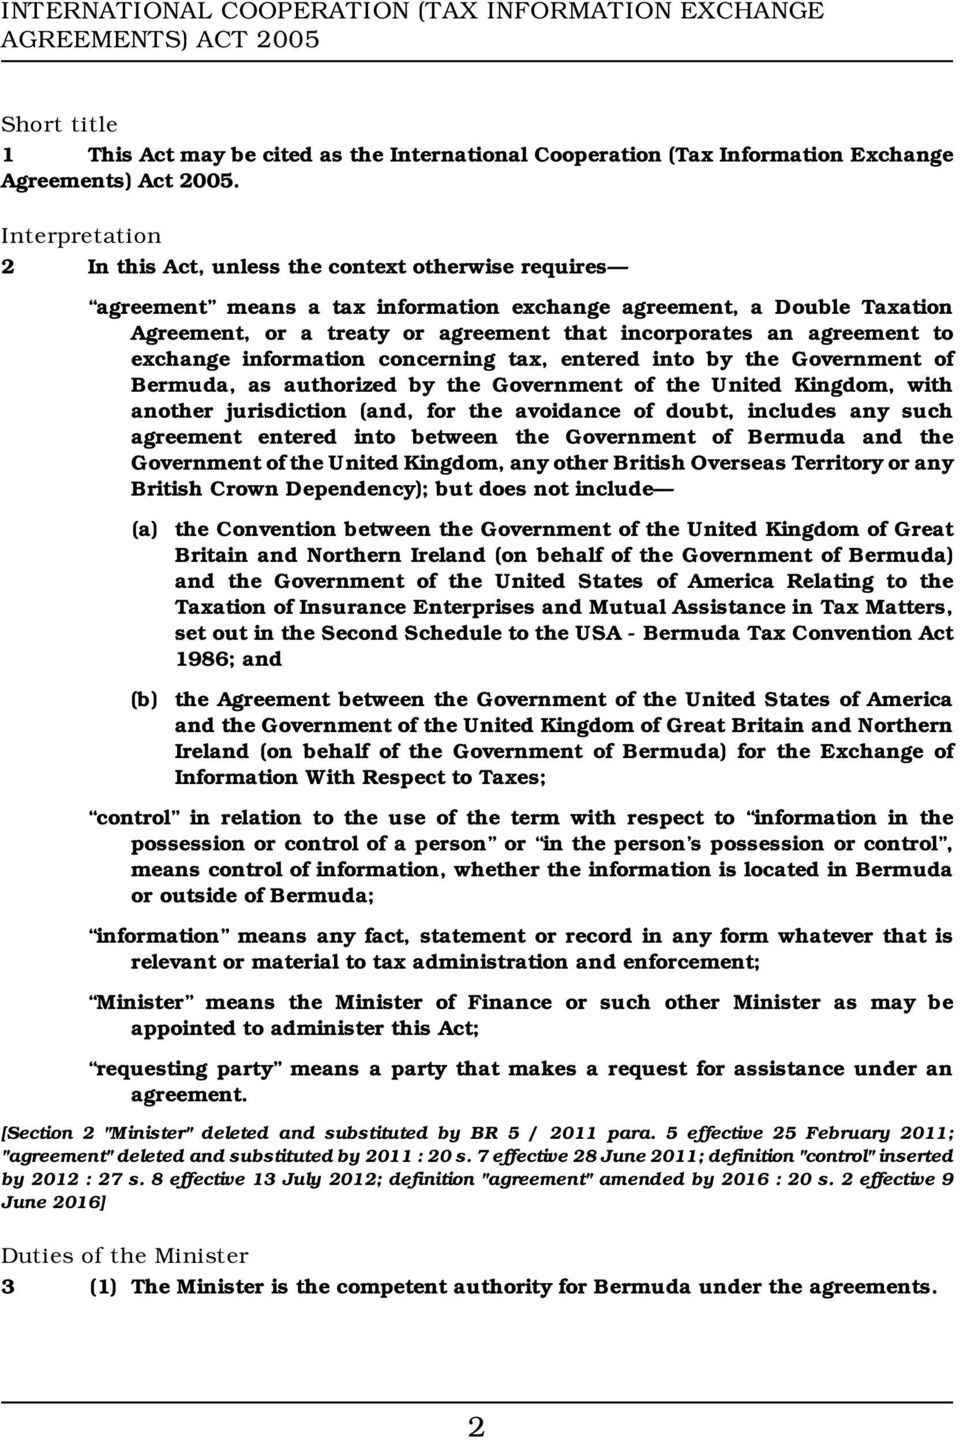 agreement to exchange information concerning tax, entered into by the Government of Bermuda, as authorized by the Government of the United Kingdom, with another jurisdiction (and, for the avoidance